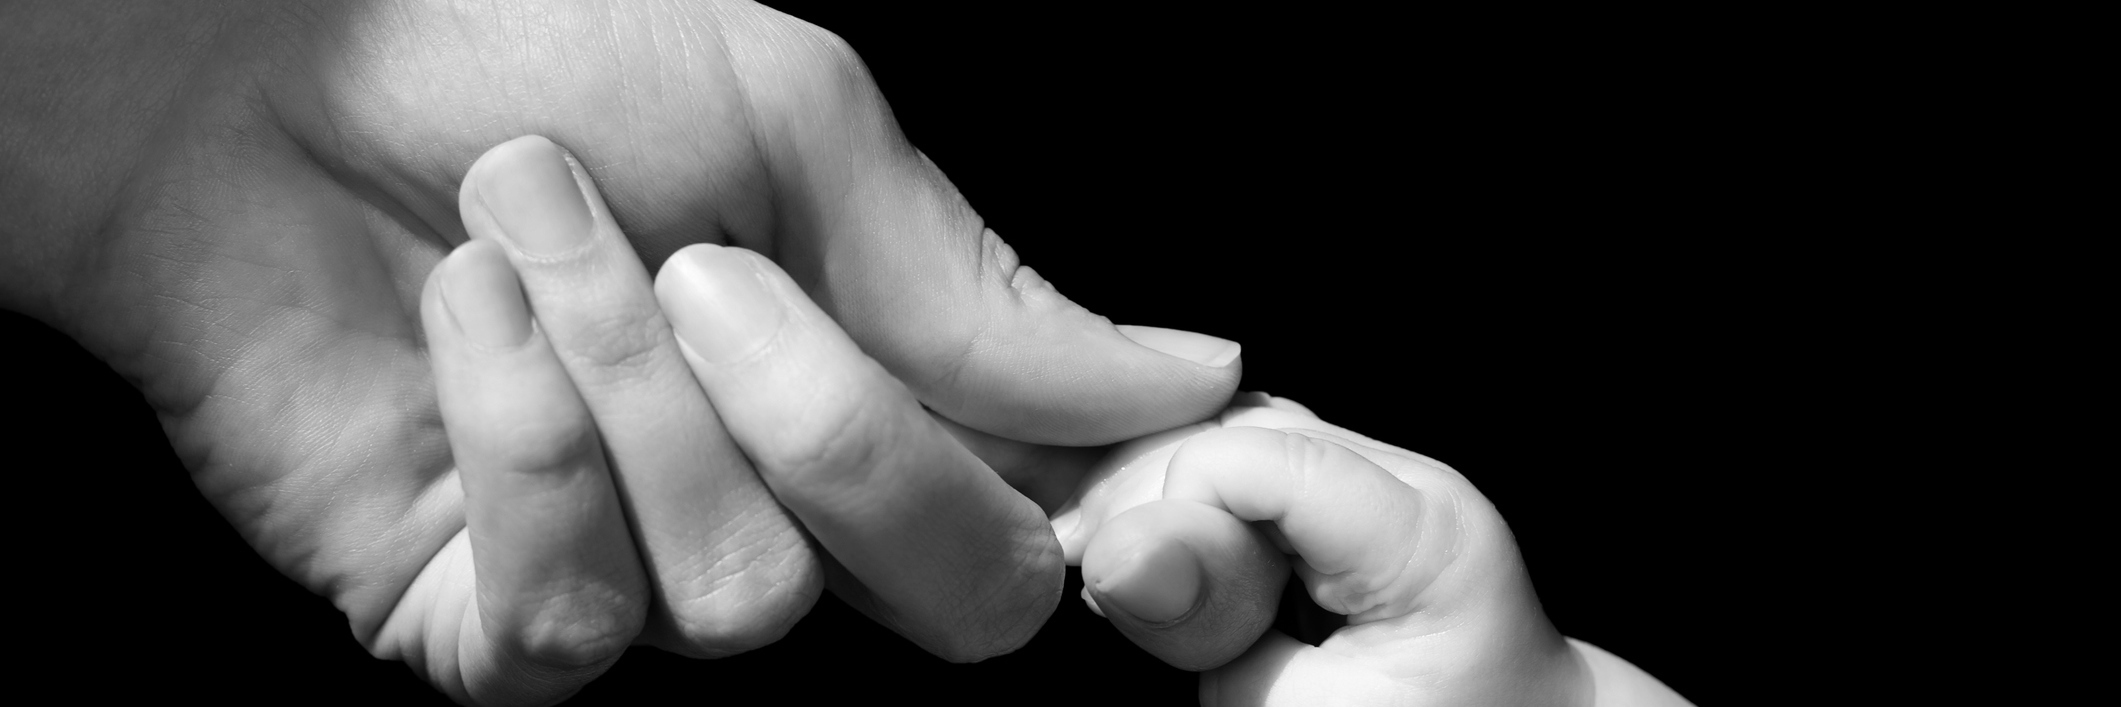 Hands of mother and baby closeup